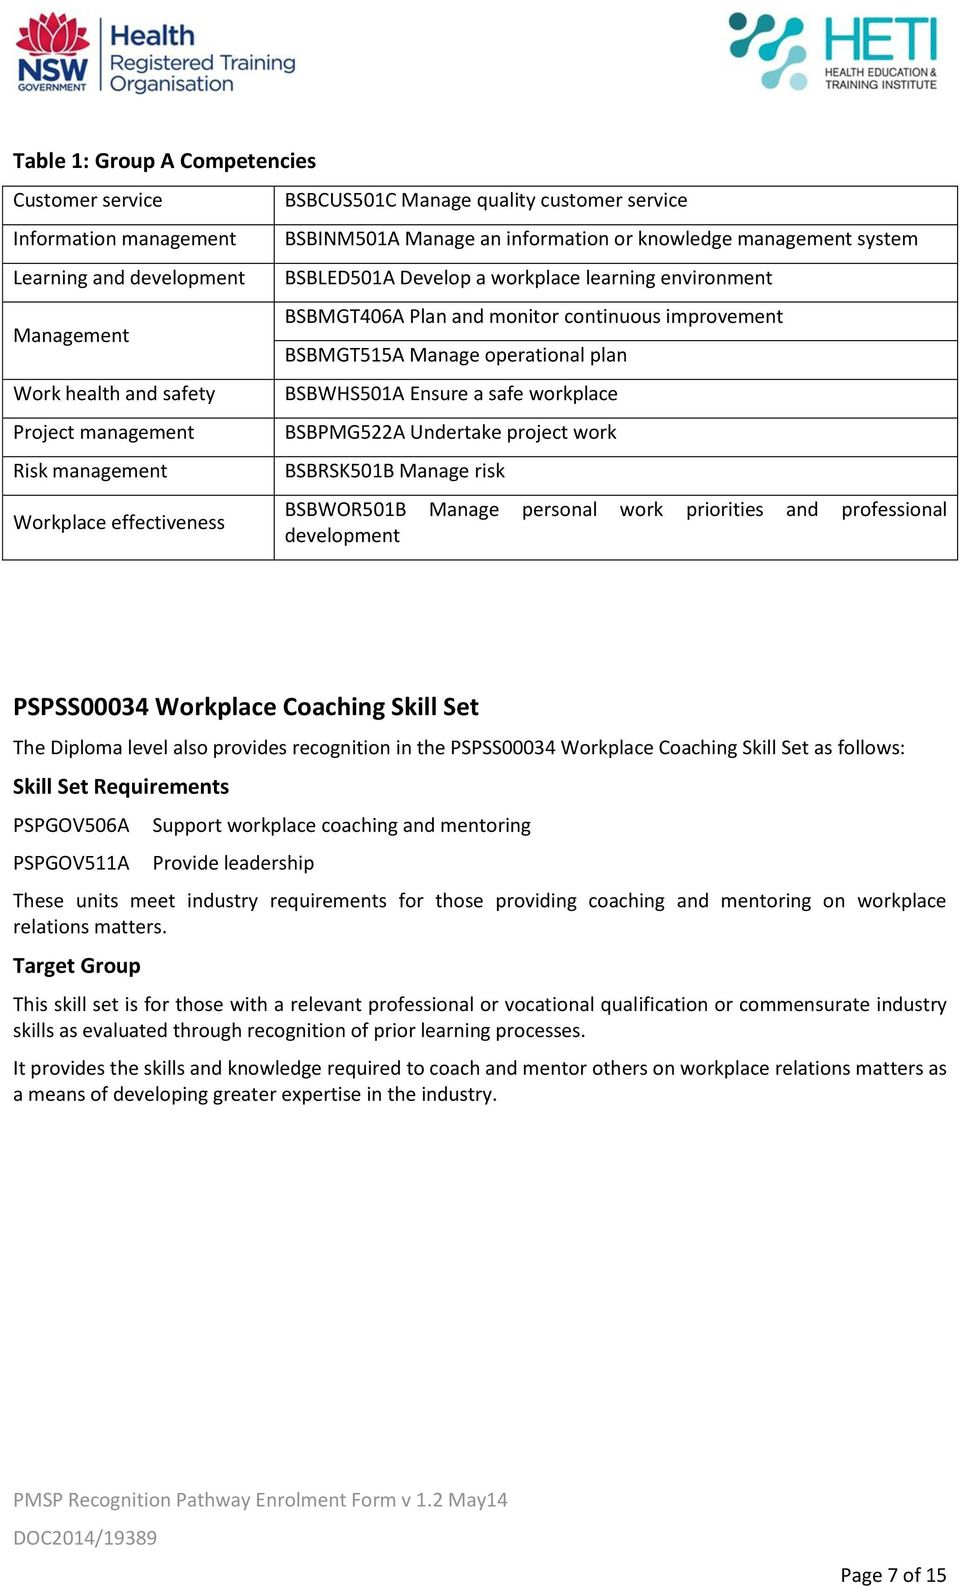 BSBMGT515A Manage operational plan BSBWHS501A Ensure a safe workplace BSBPMG522A Undertake project work BSBRSK501B Manage risk BSBWOR501B Manage personal work priorities and professional development